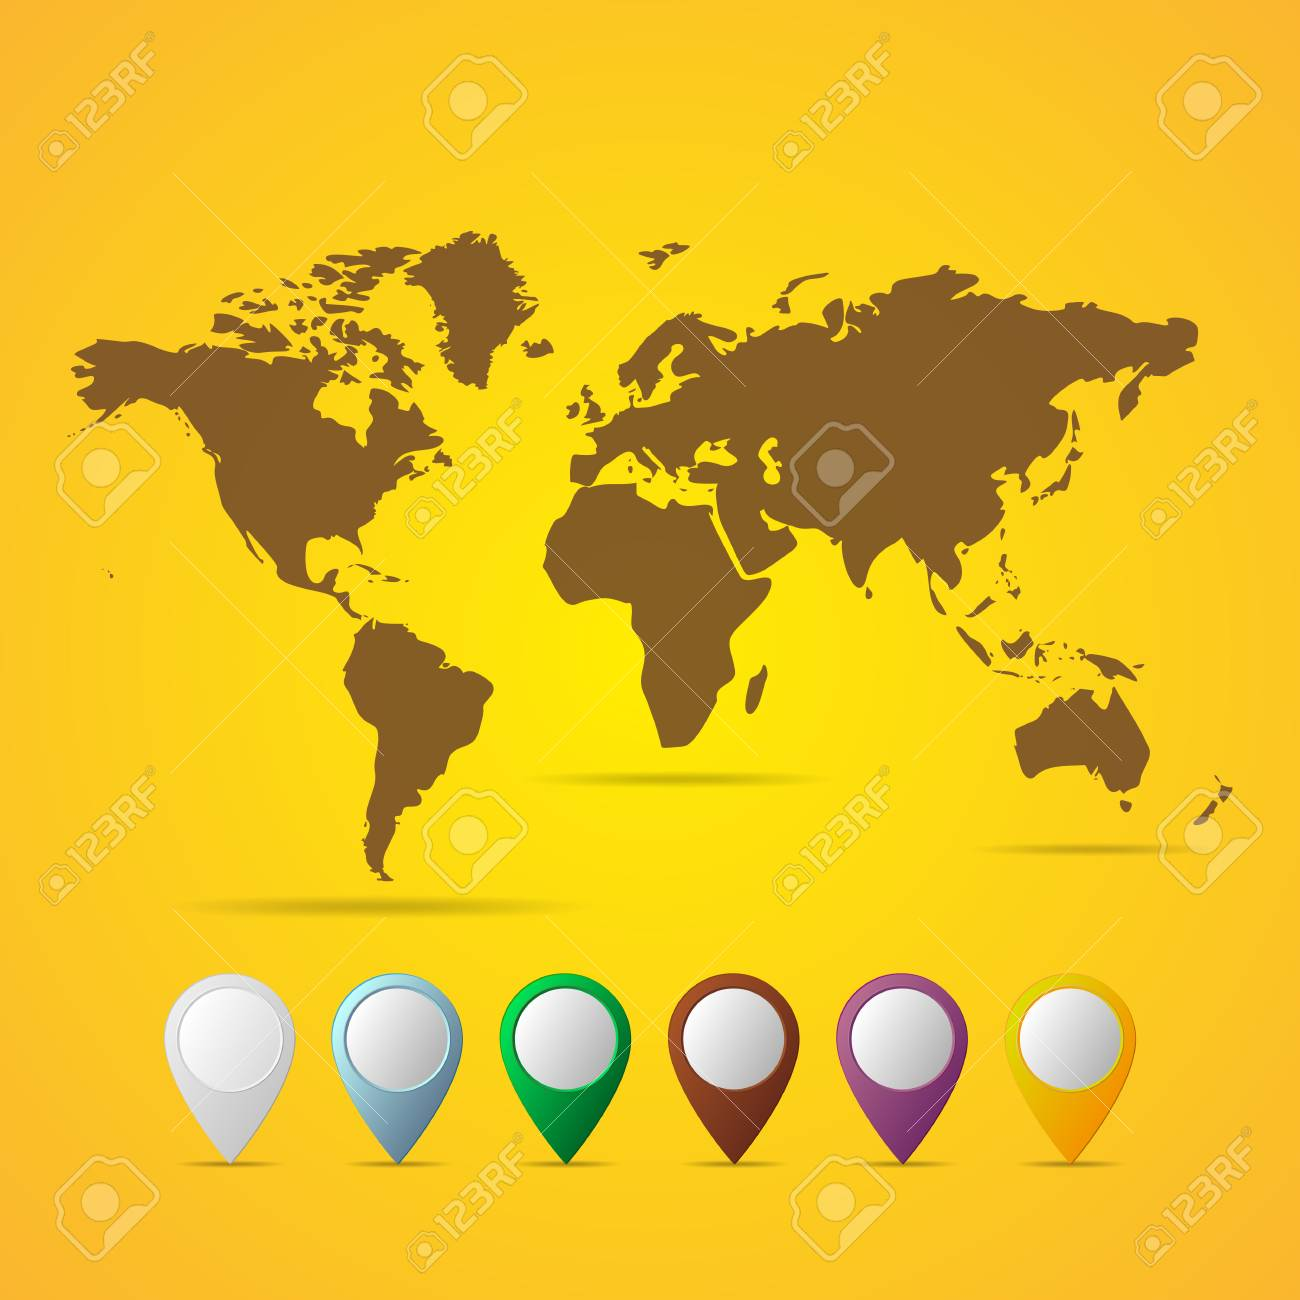 Flat World Map Vector.Black World Map Vector Illustration Flat World Map With Set